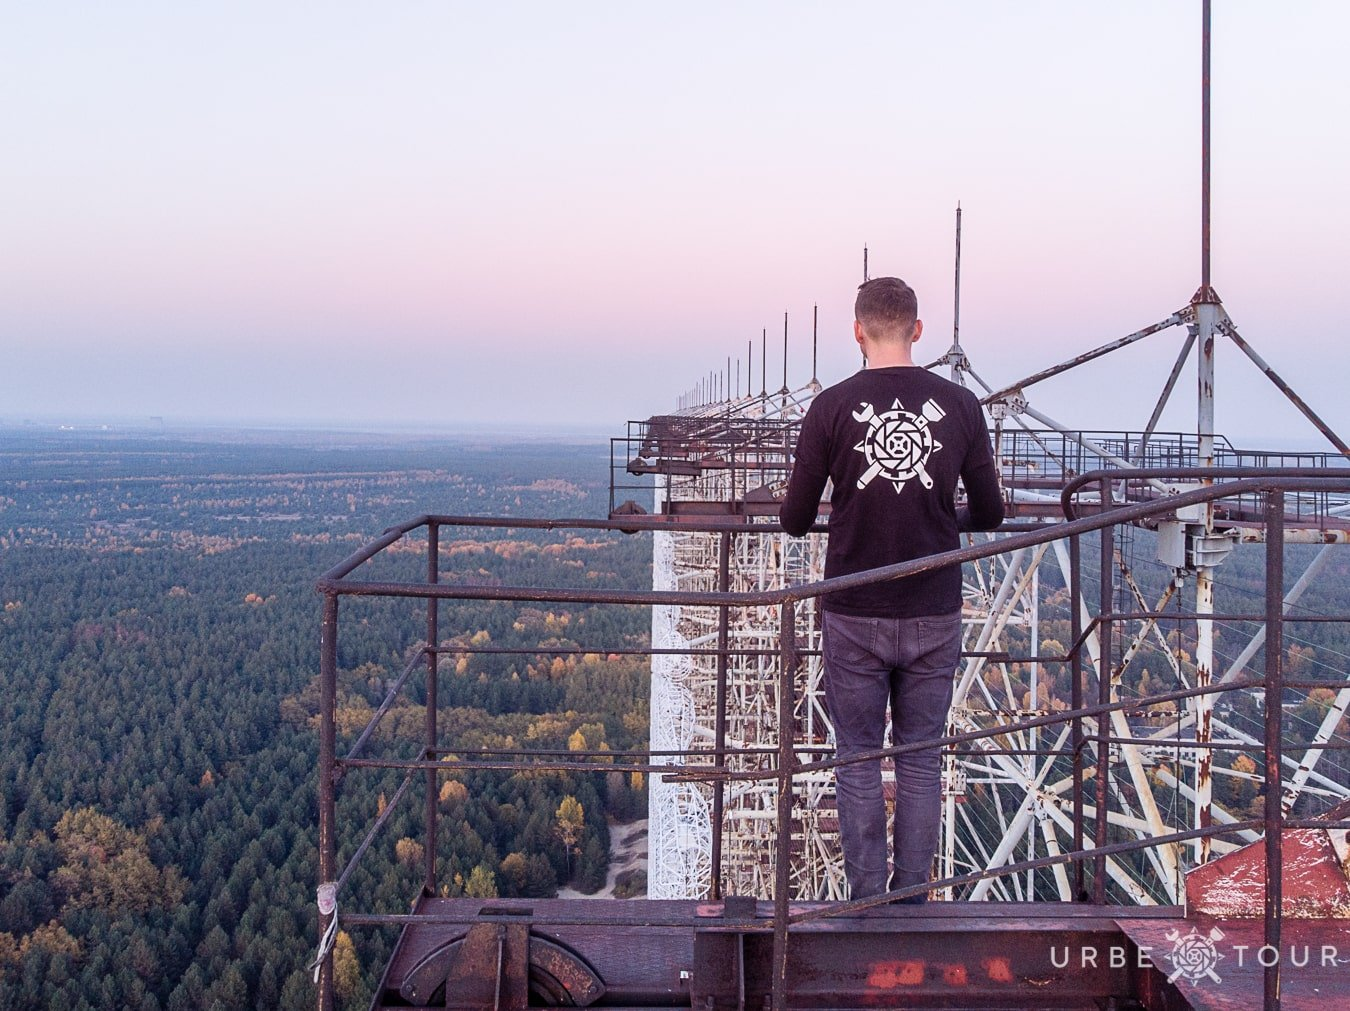 urbextour on the top of radar stationduga-3